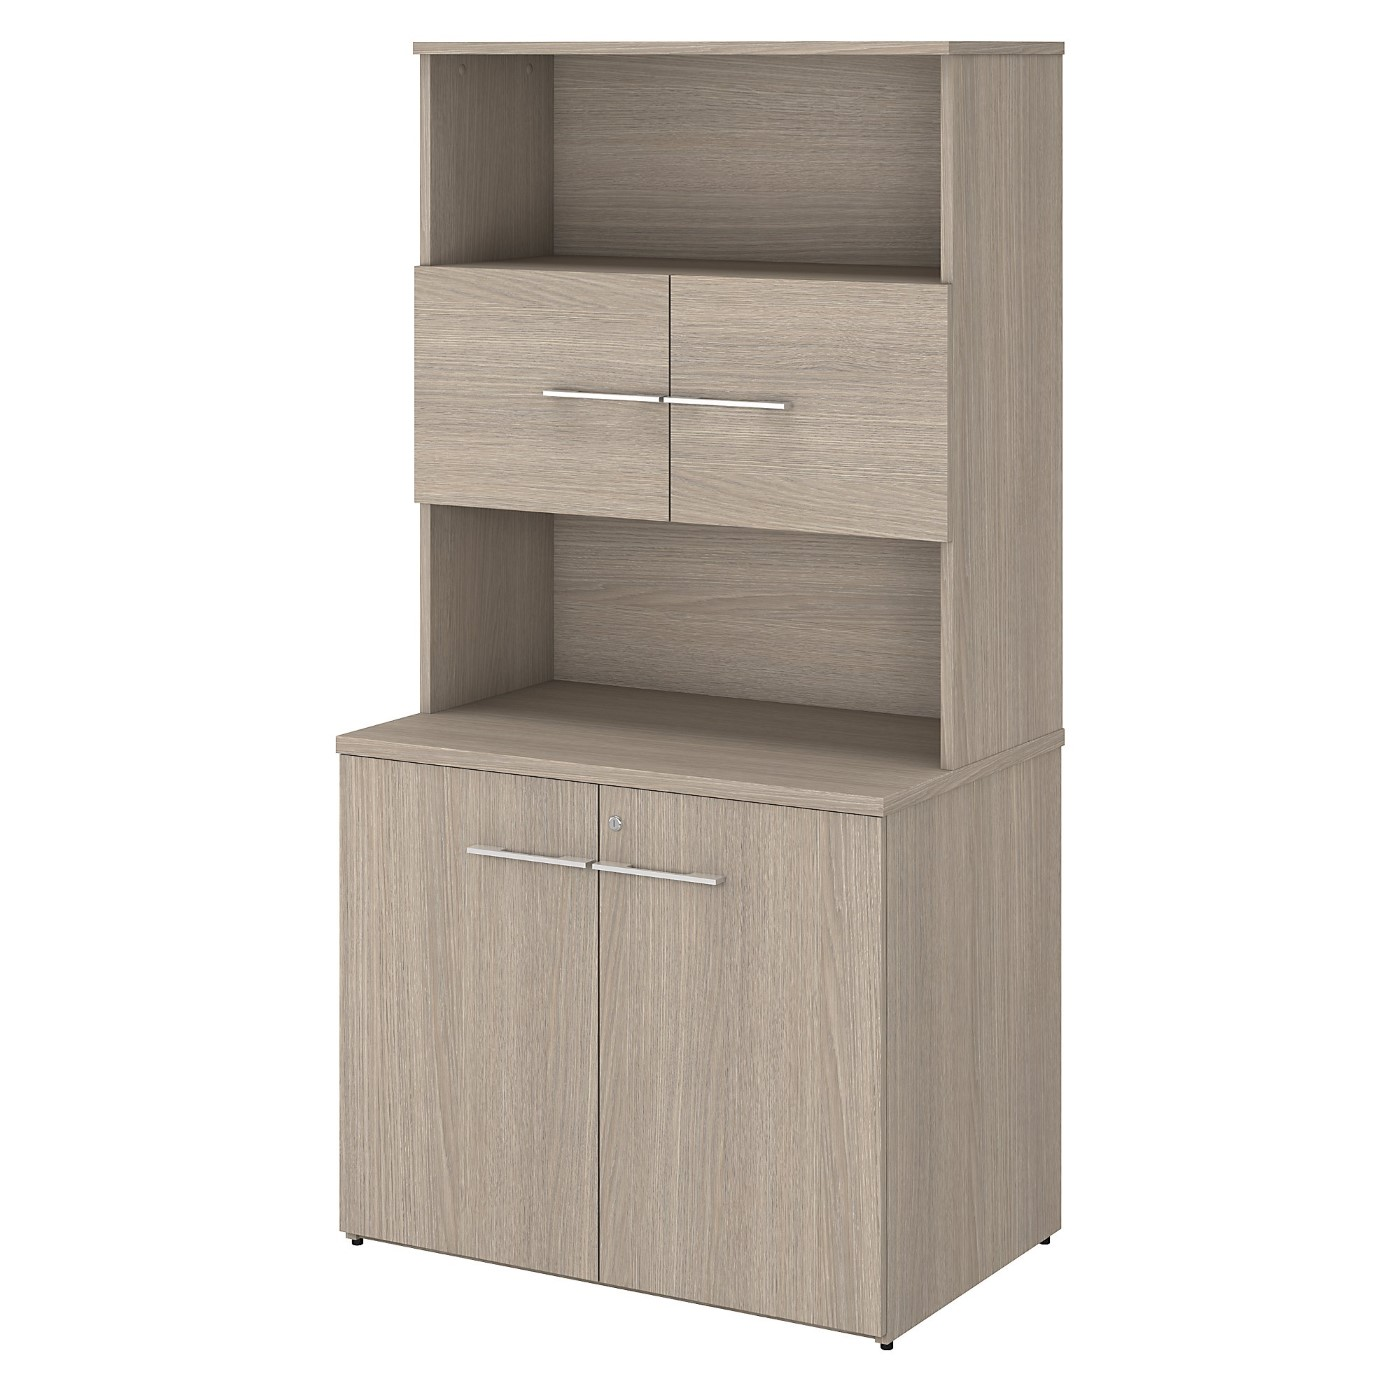 BUSH BUSINESS FURNITURE OFFICE 500 36W TALL STORAGE CABINET WITH DOORS AND SHELVES. FREE SHIPPING